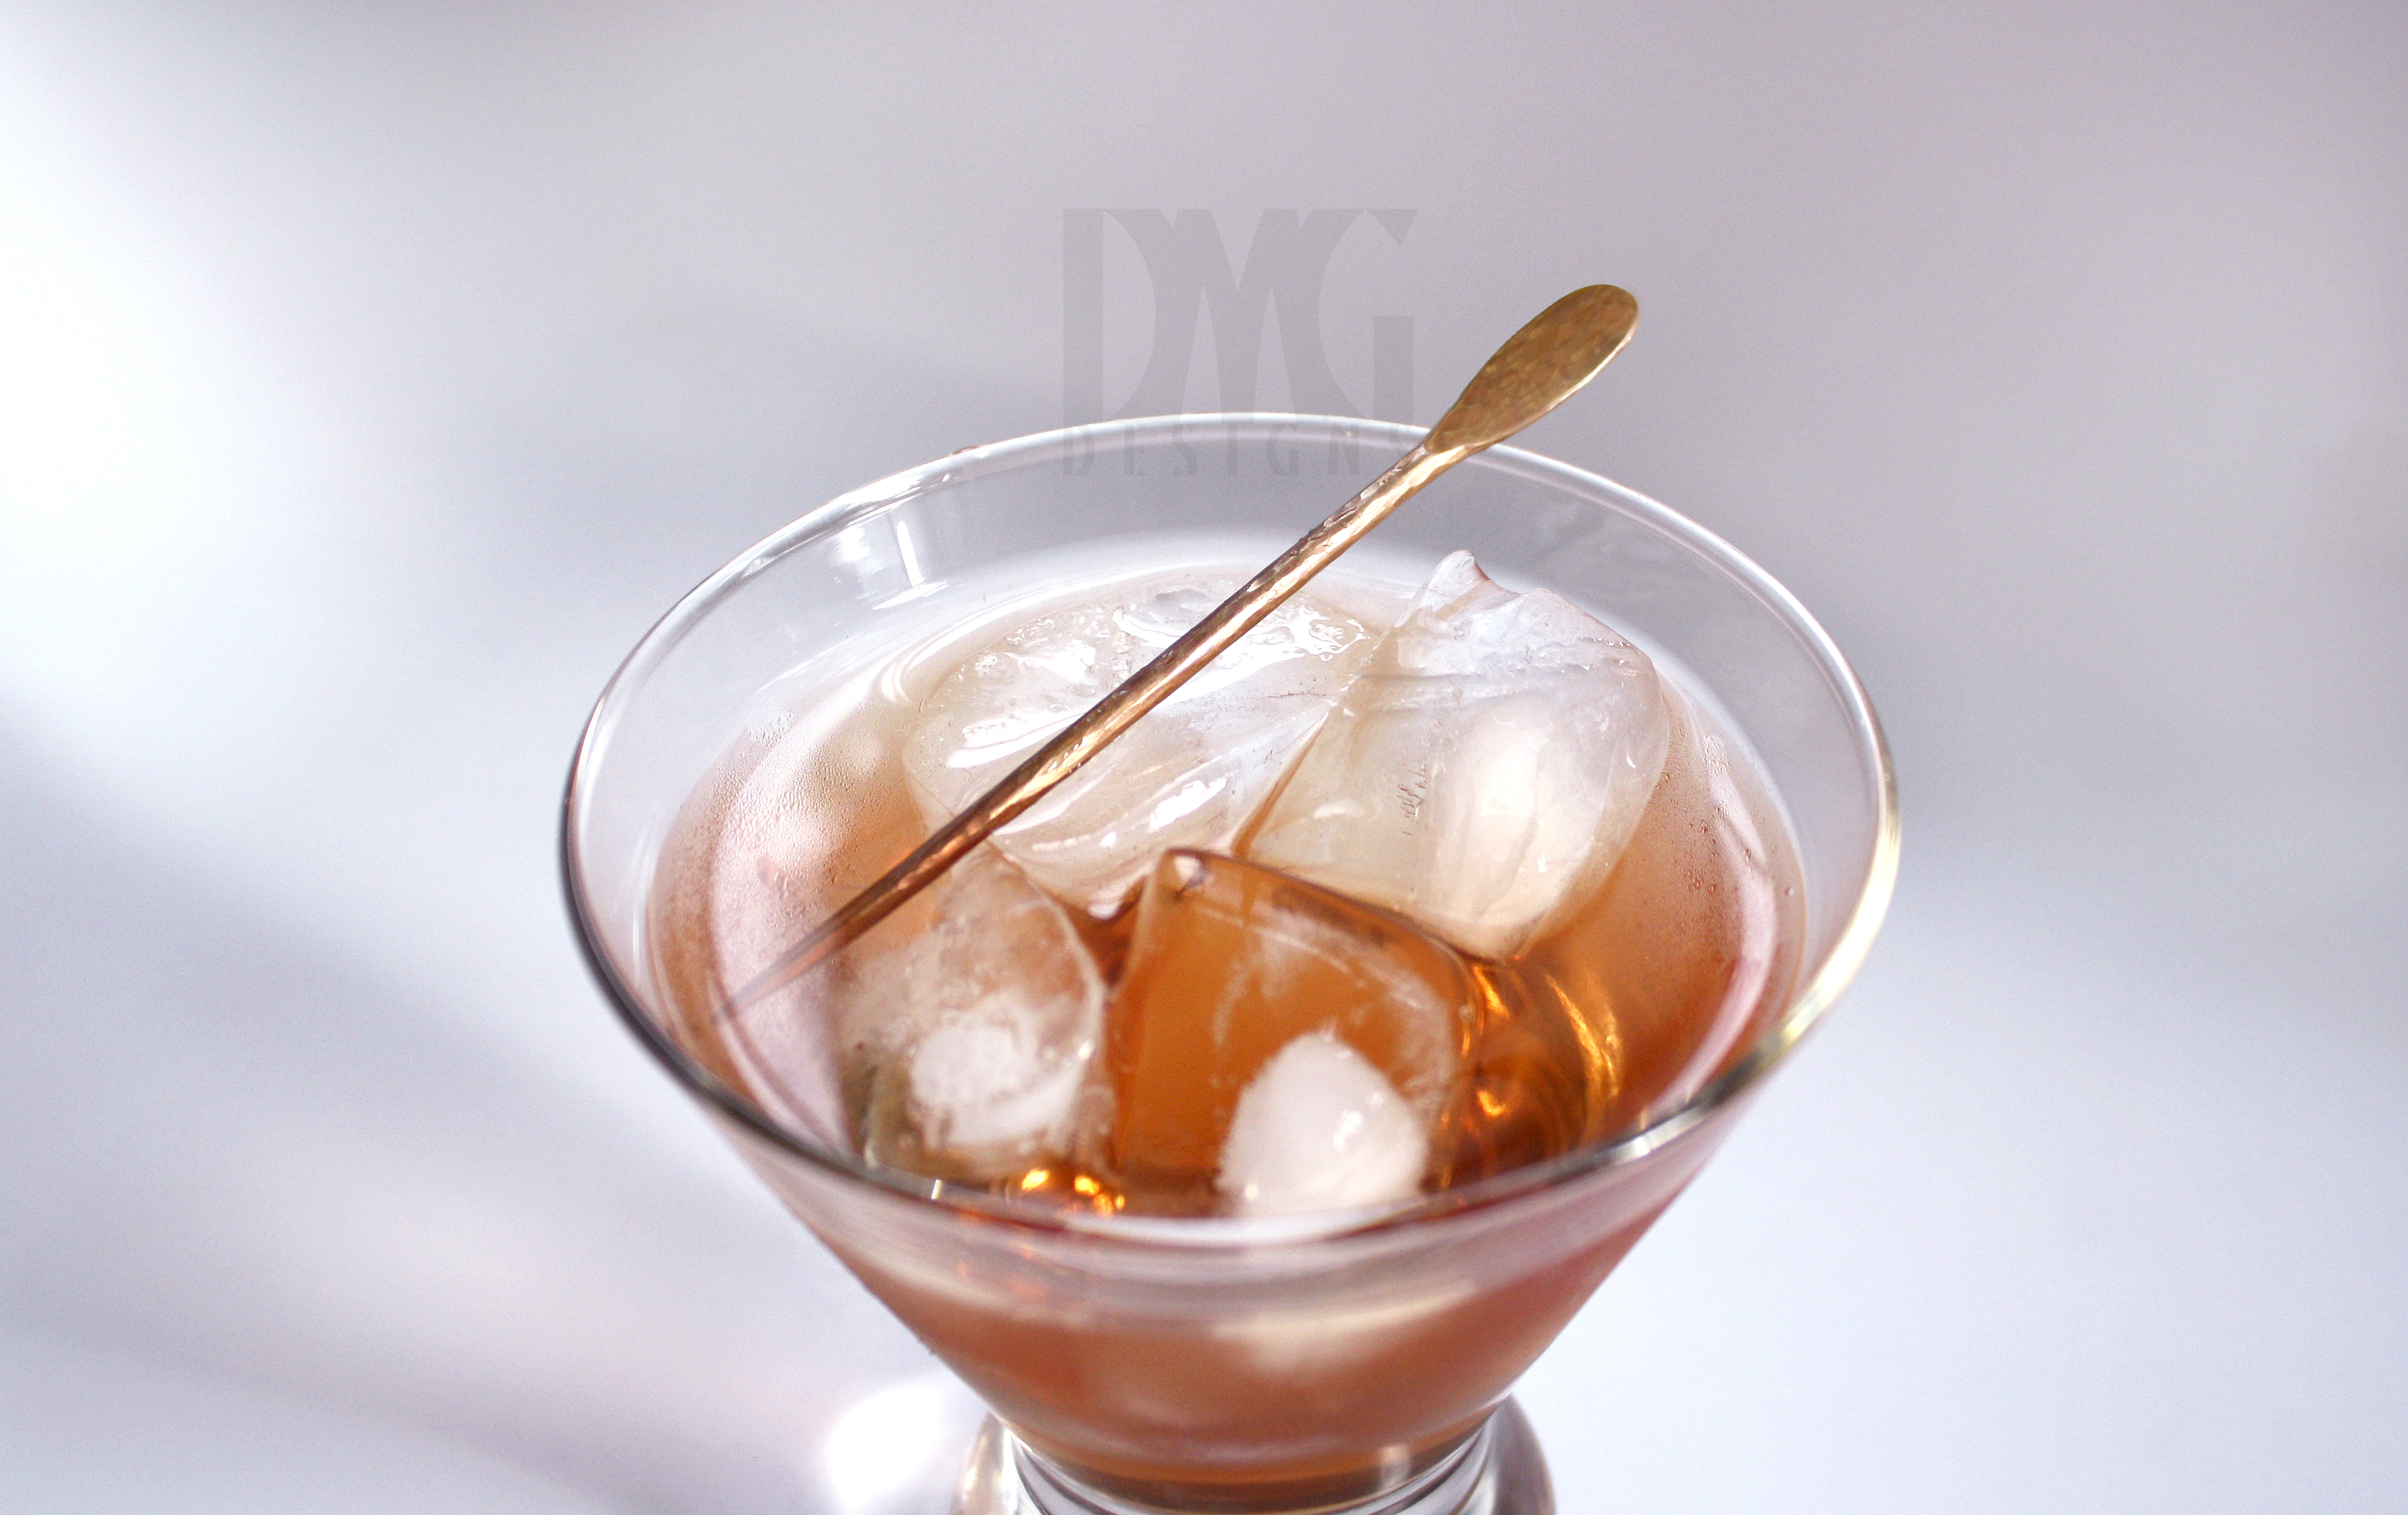 Cocktail Pick - Oval - In glass